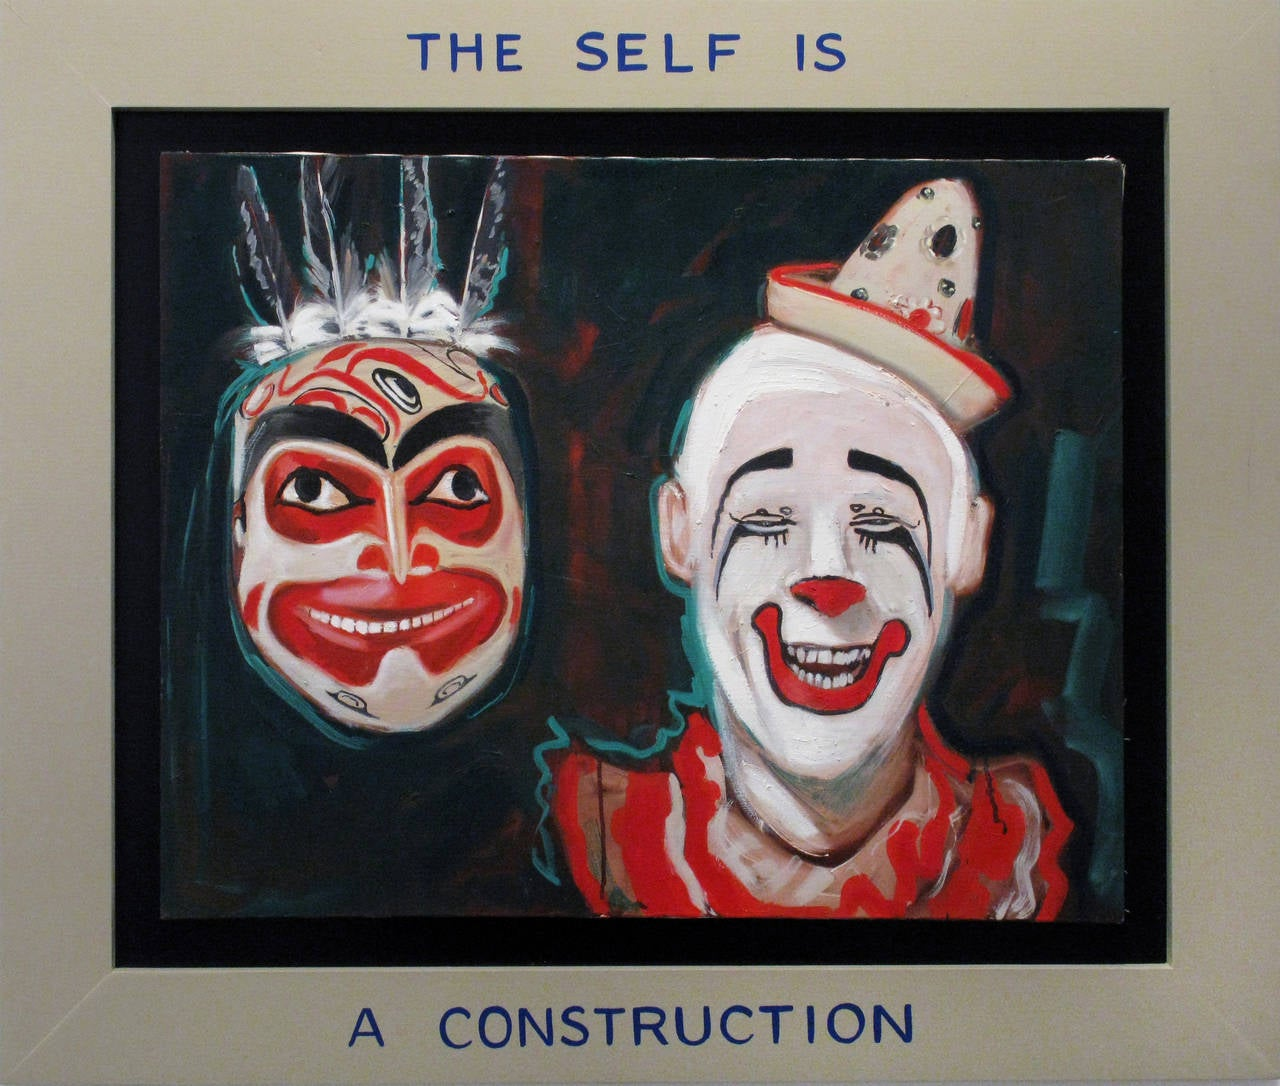 The Self is a Construction